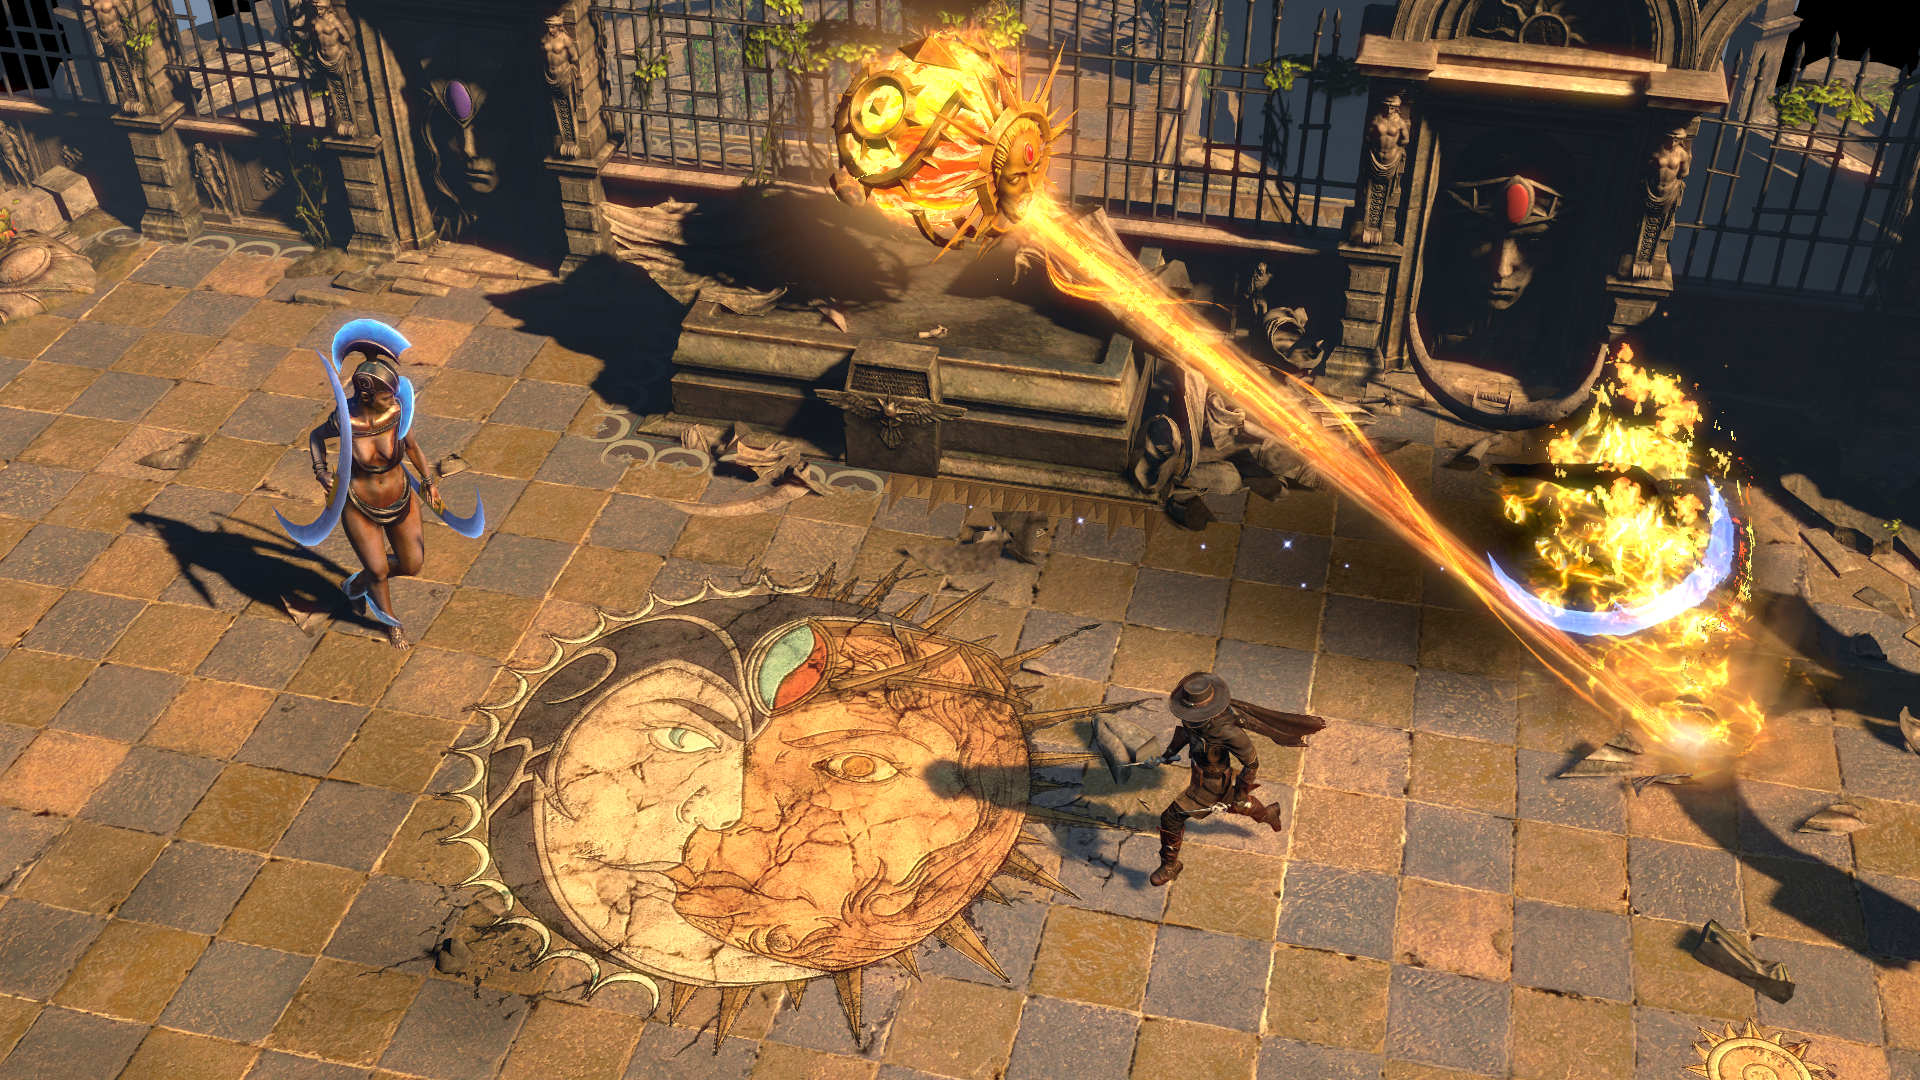 Path of Exile Solaris and Lunaris Battle Screenshot